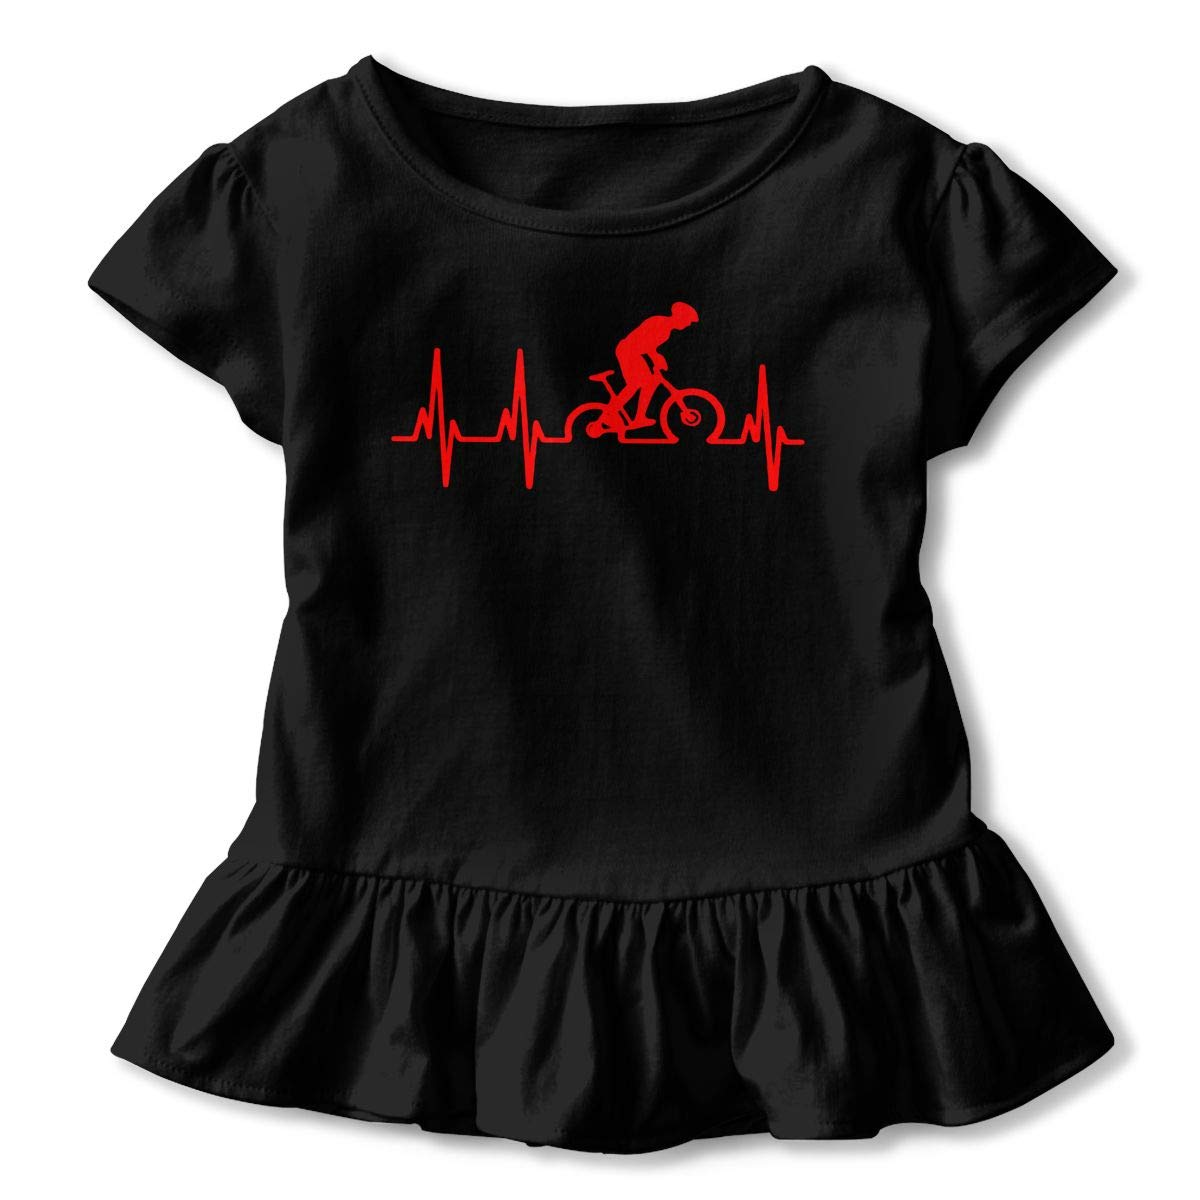 Heartbeat Bycicle Toddler//Infant Girls Short Sleeve T-Shirts Ruffles Shirt Tee Jersey for 2-6T